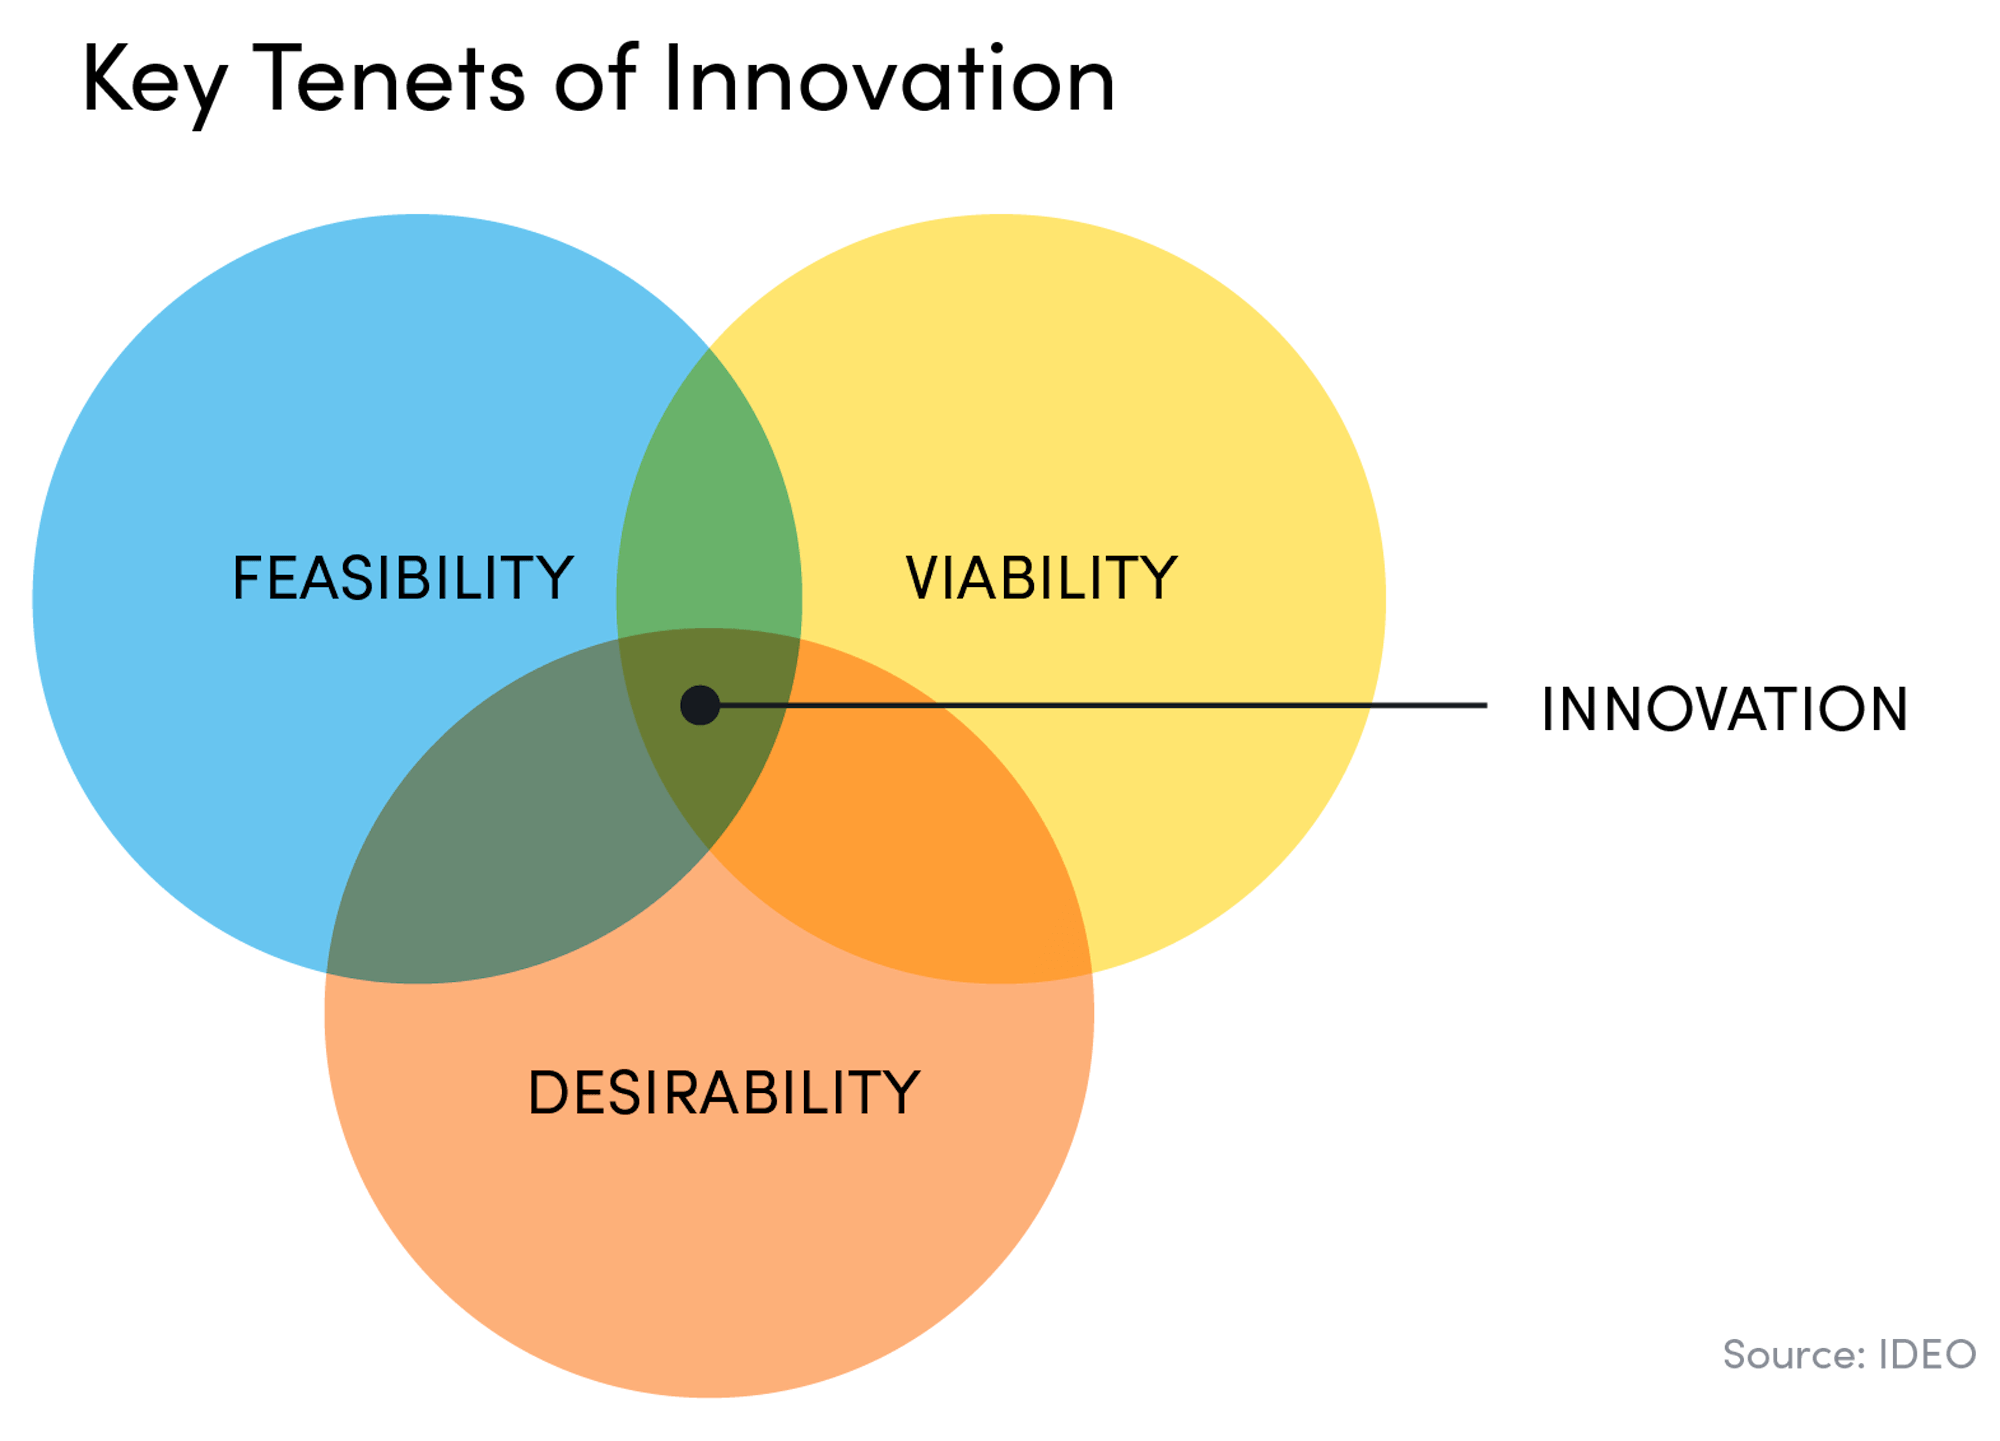 Key tenets of innovation: feasibility, desirability, and viability